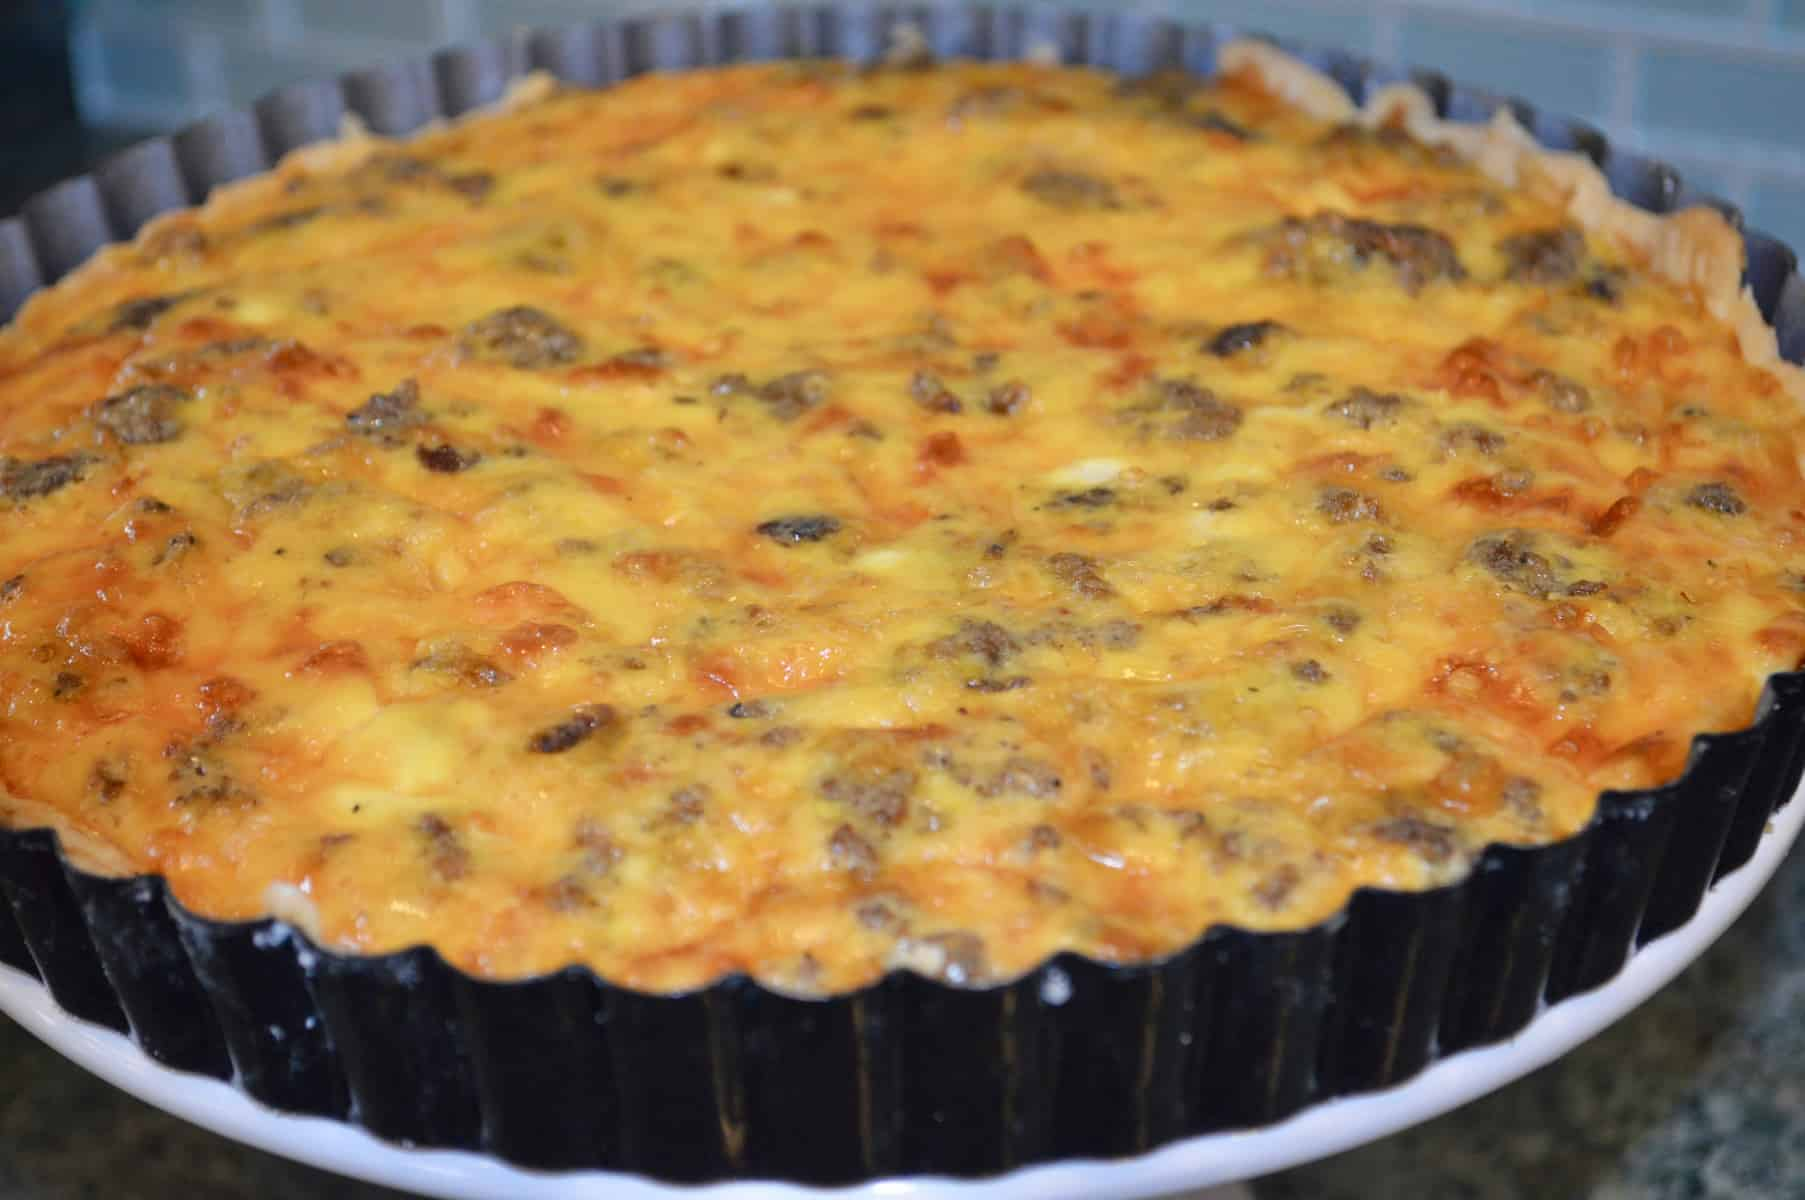 Egg and Sausage tart in a pan on a white pedestal